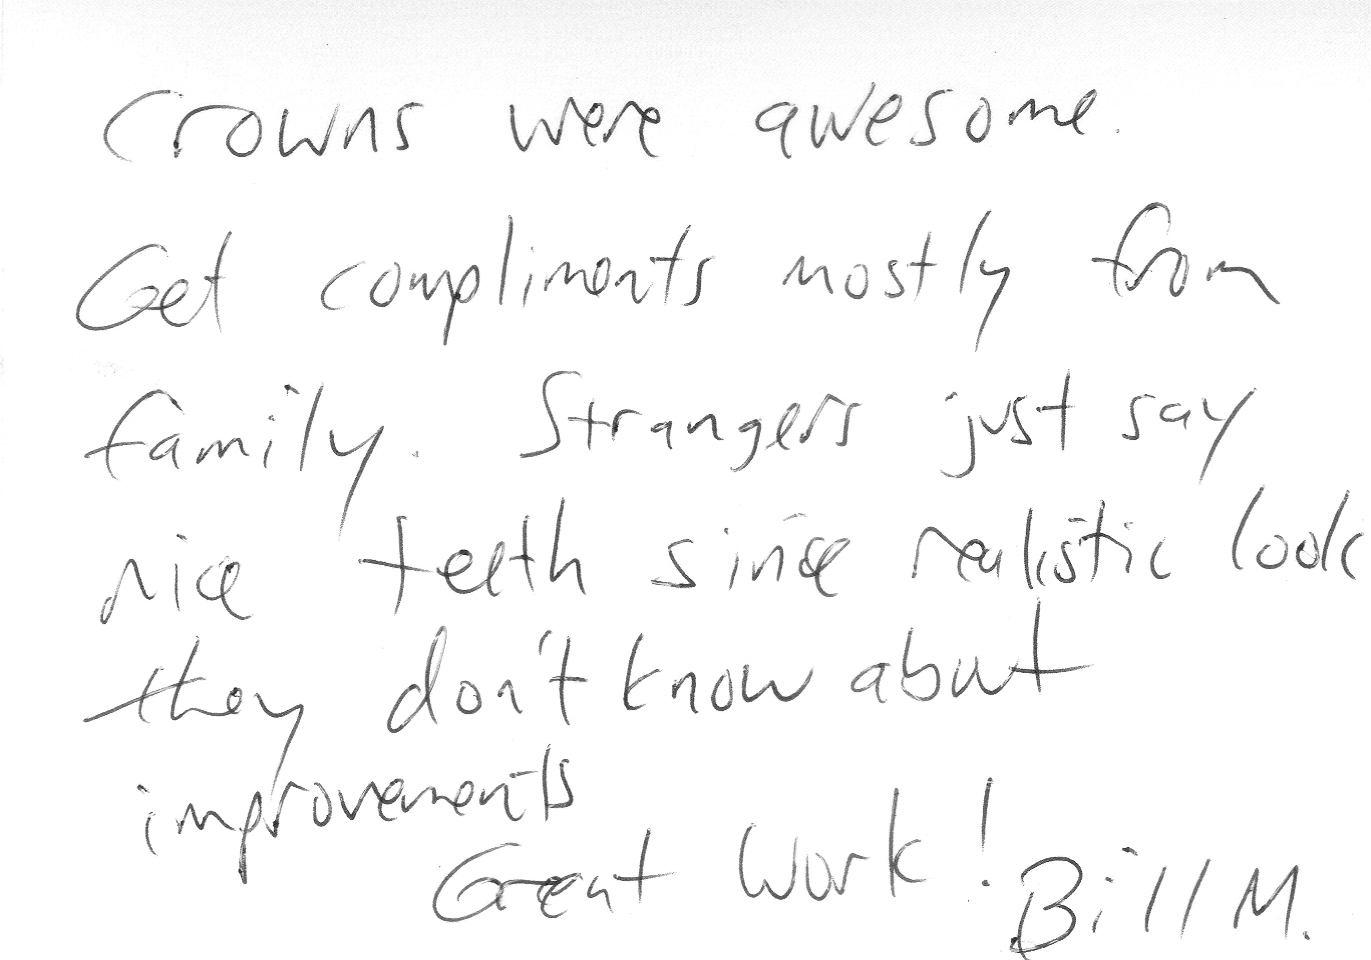 Thanks for the endorsement, Bill!